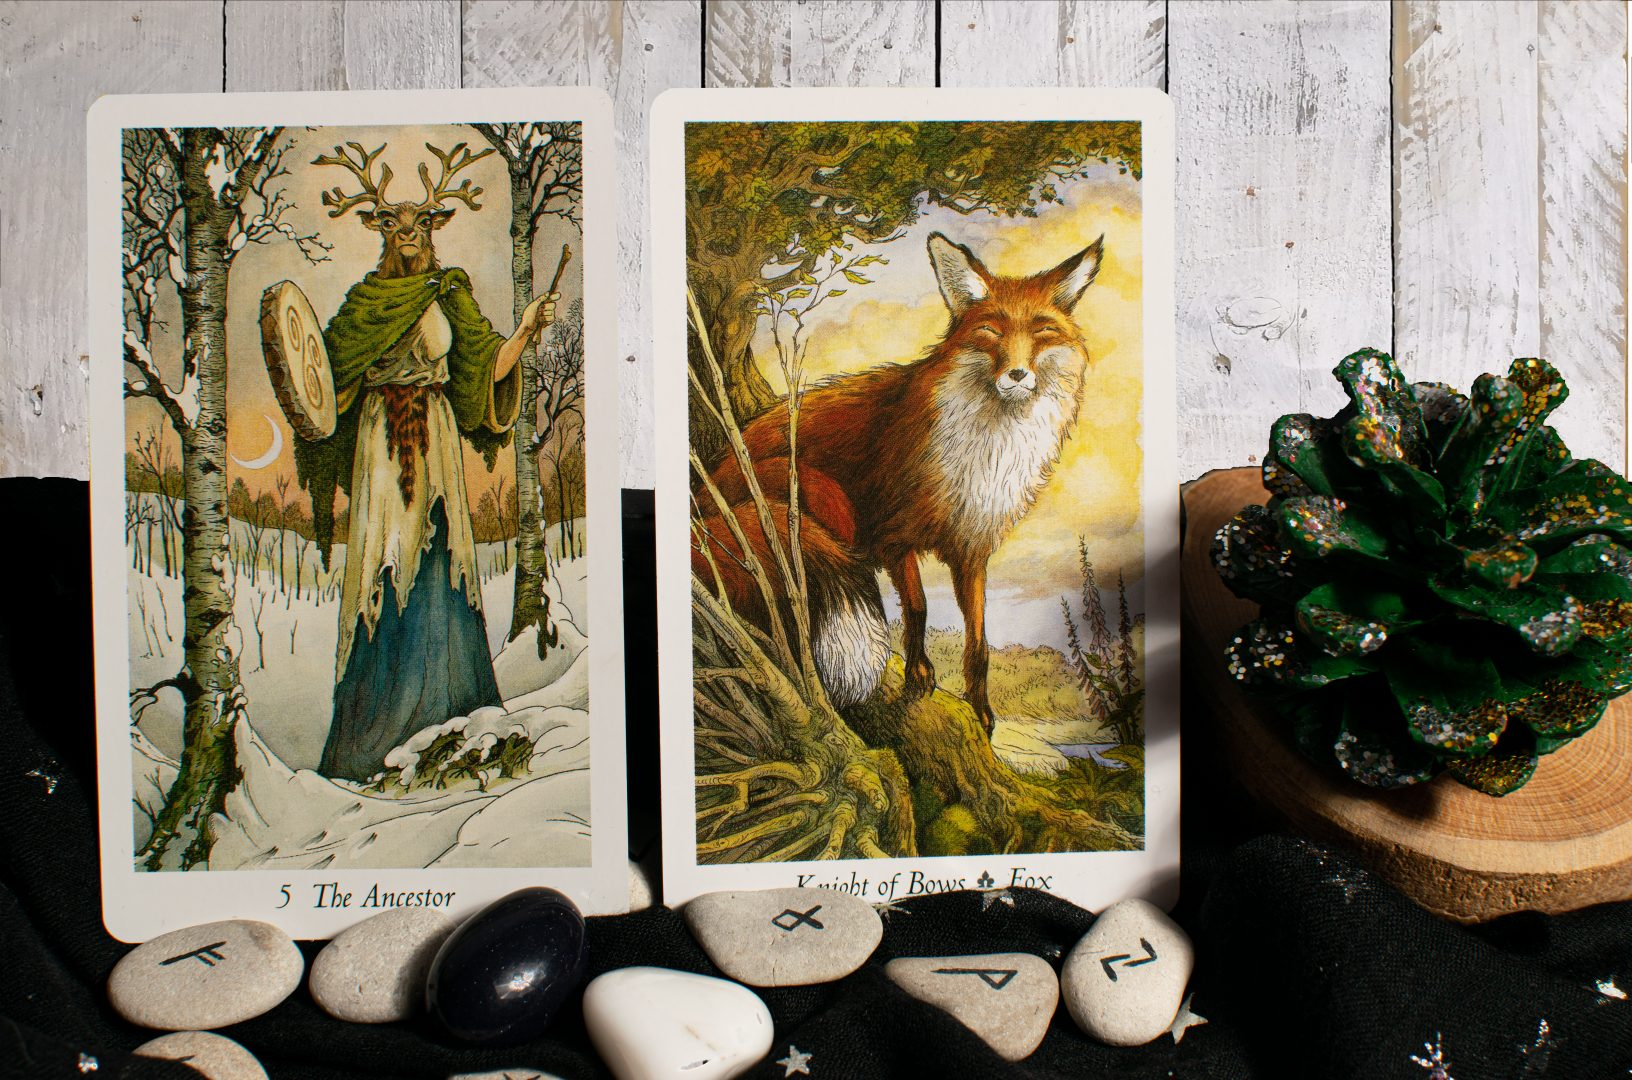 Ancestor and Fox Wildwood Tarot